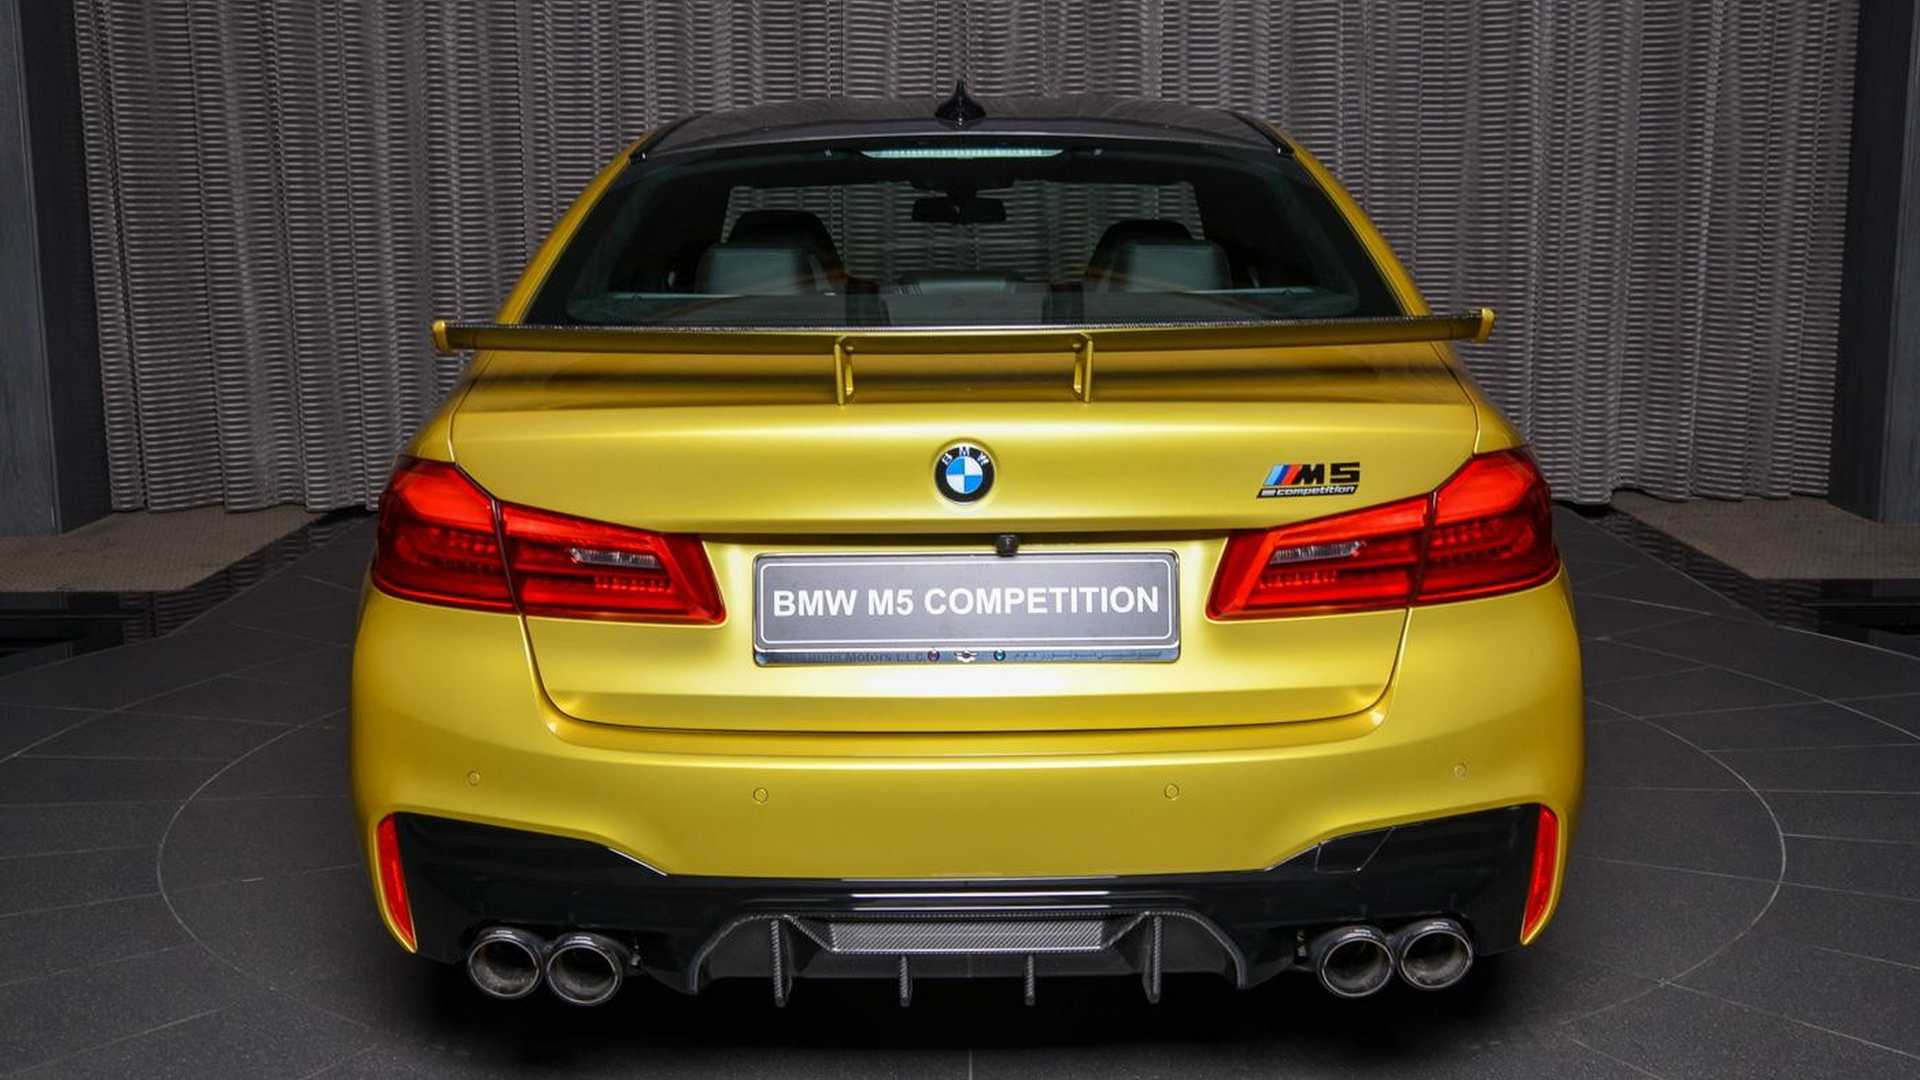 bmw-m5-competition-austin-yellow-7.jpg